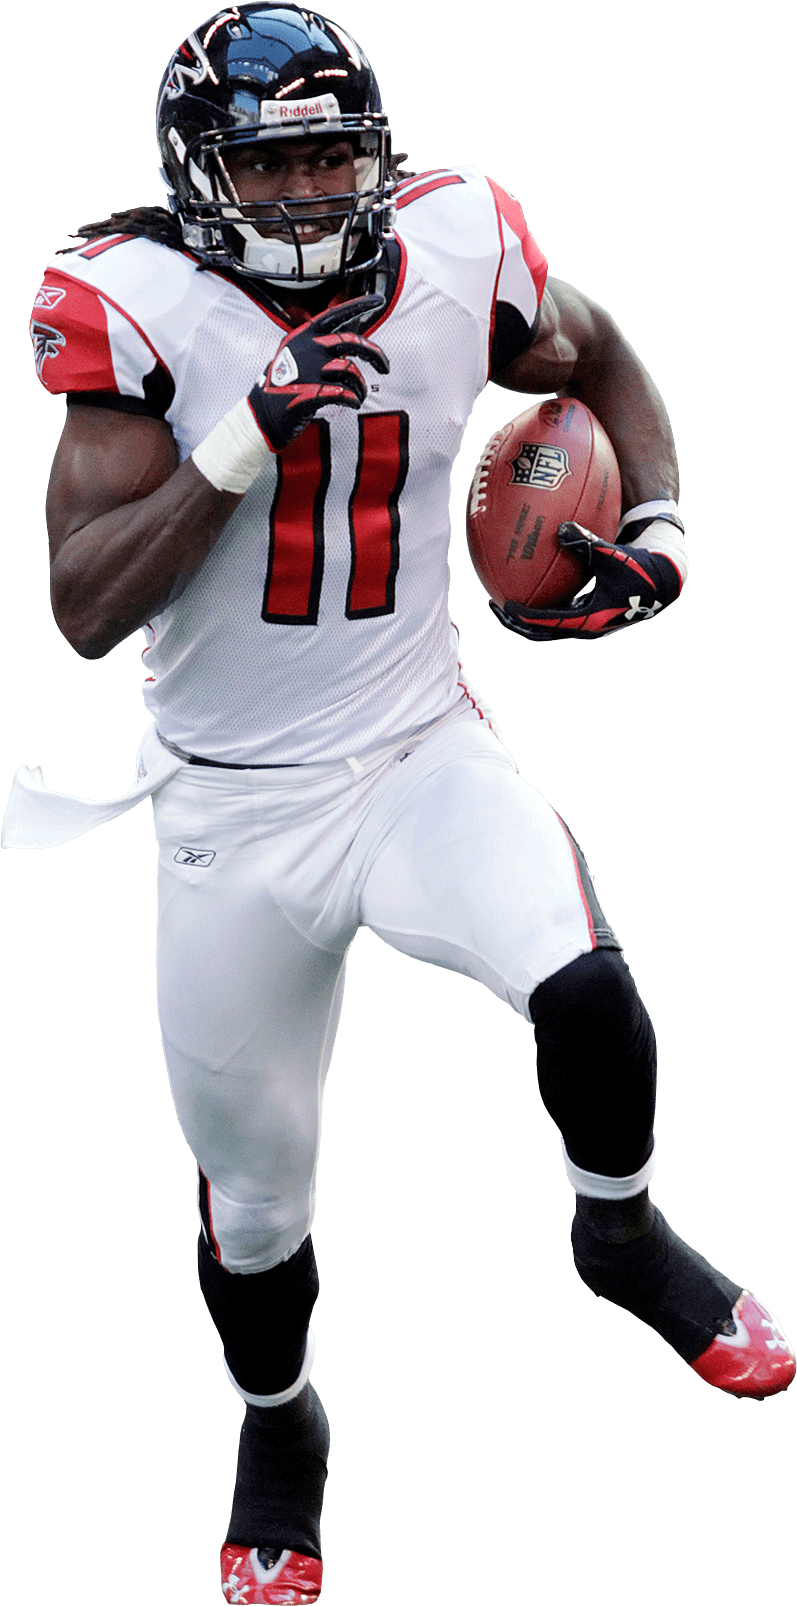 American Football Player Throwing A Ball Png Image American Football American Football Players Football